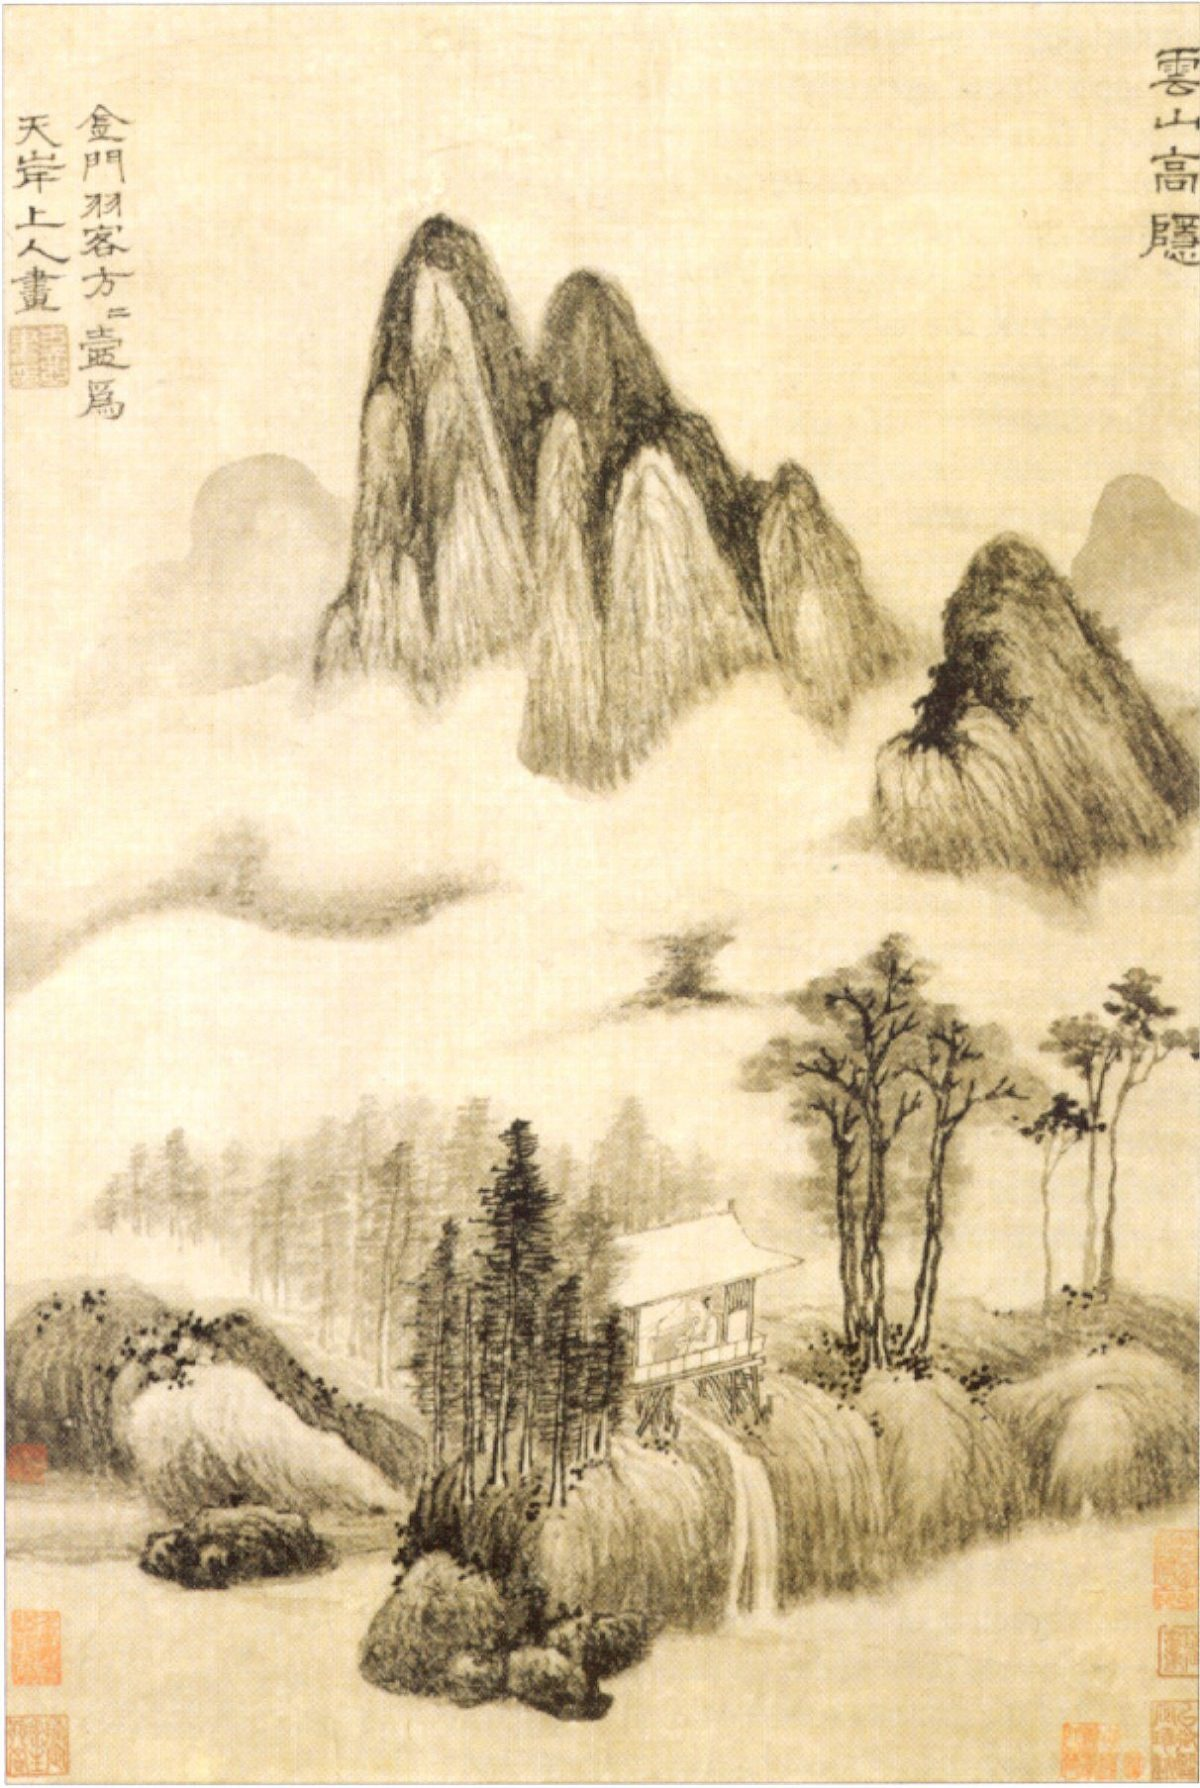 """Lofty Hermitage in Cloudy Mountains,"" ink on paper by Fang Fanghu, 14th-century Chinese, Honolulu Academy of Arts. (Public Domain)"